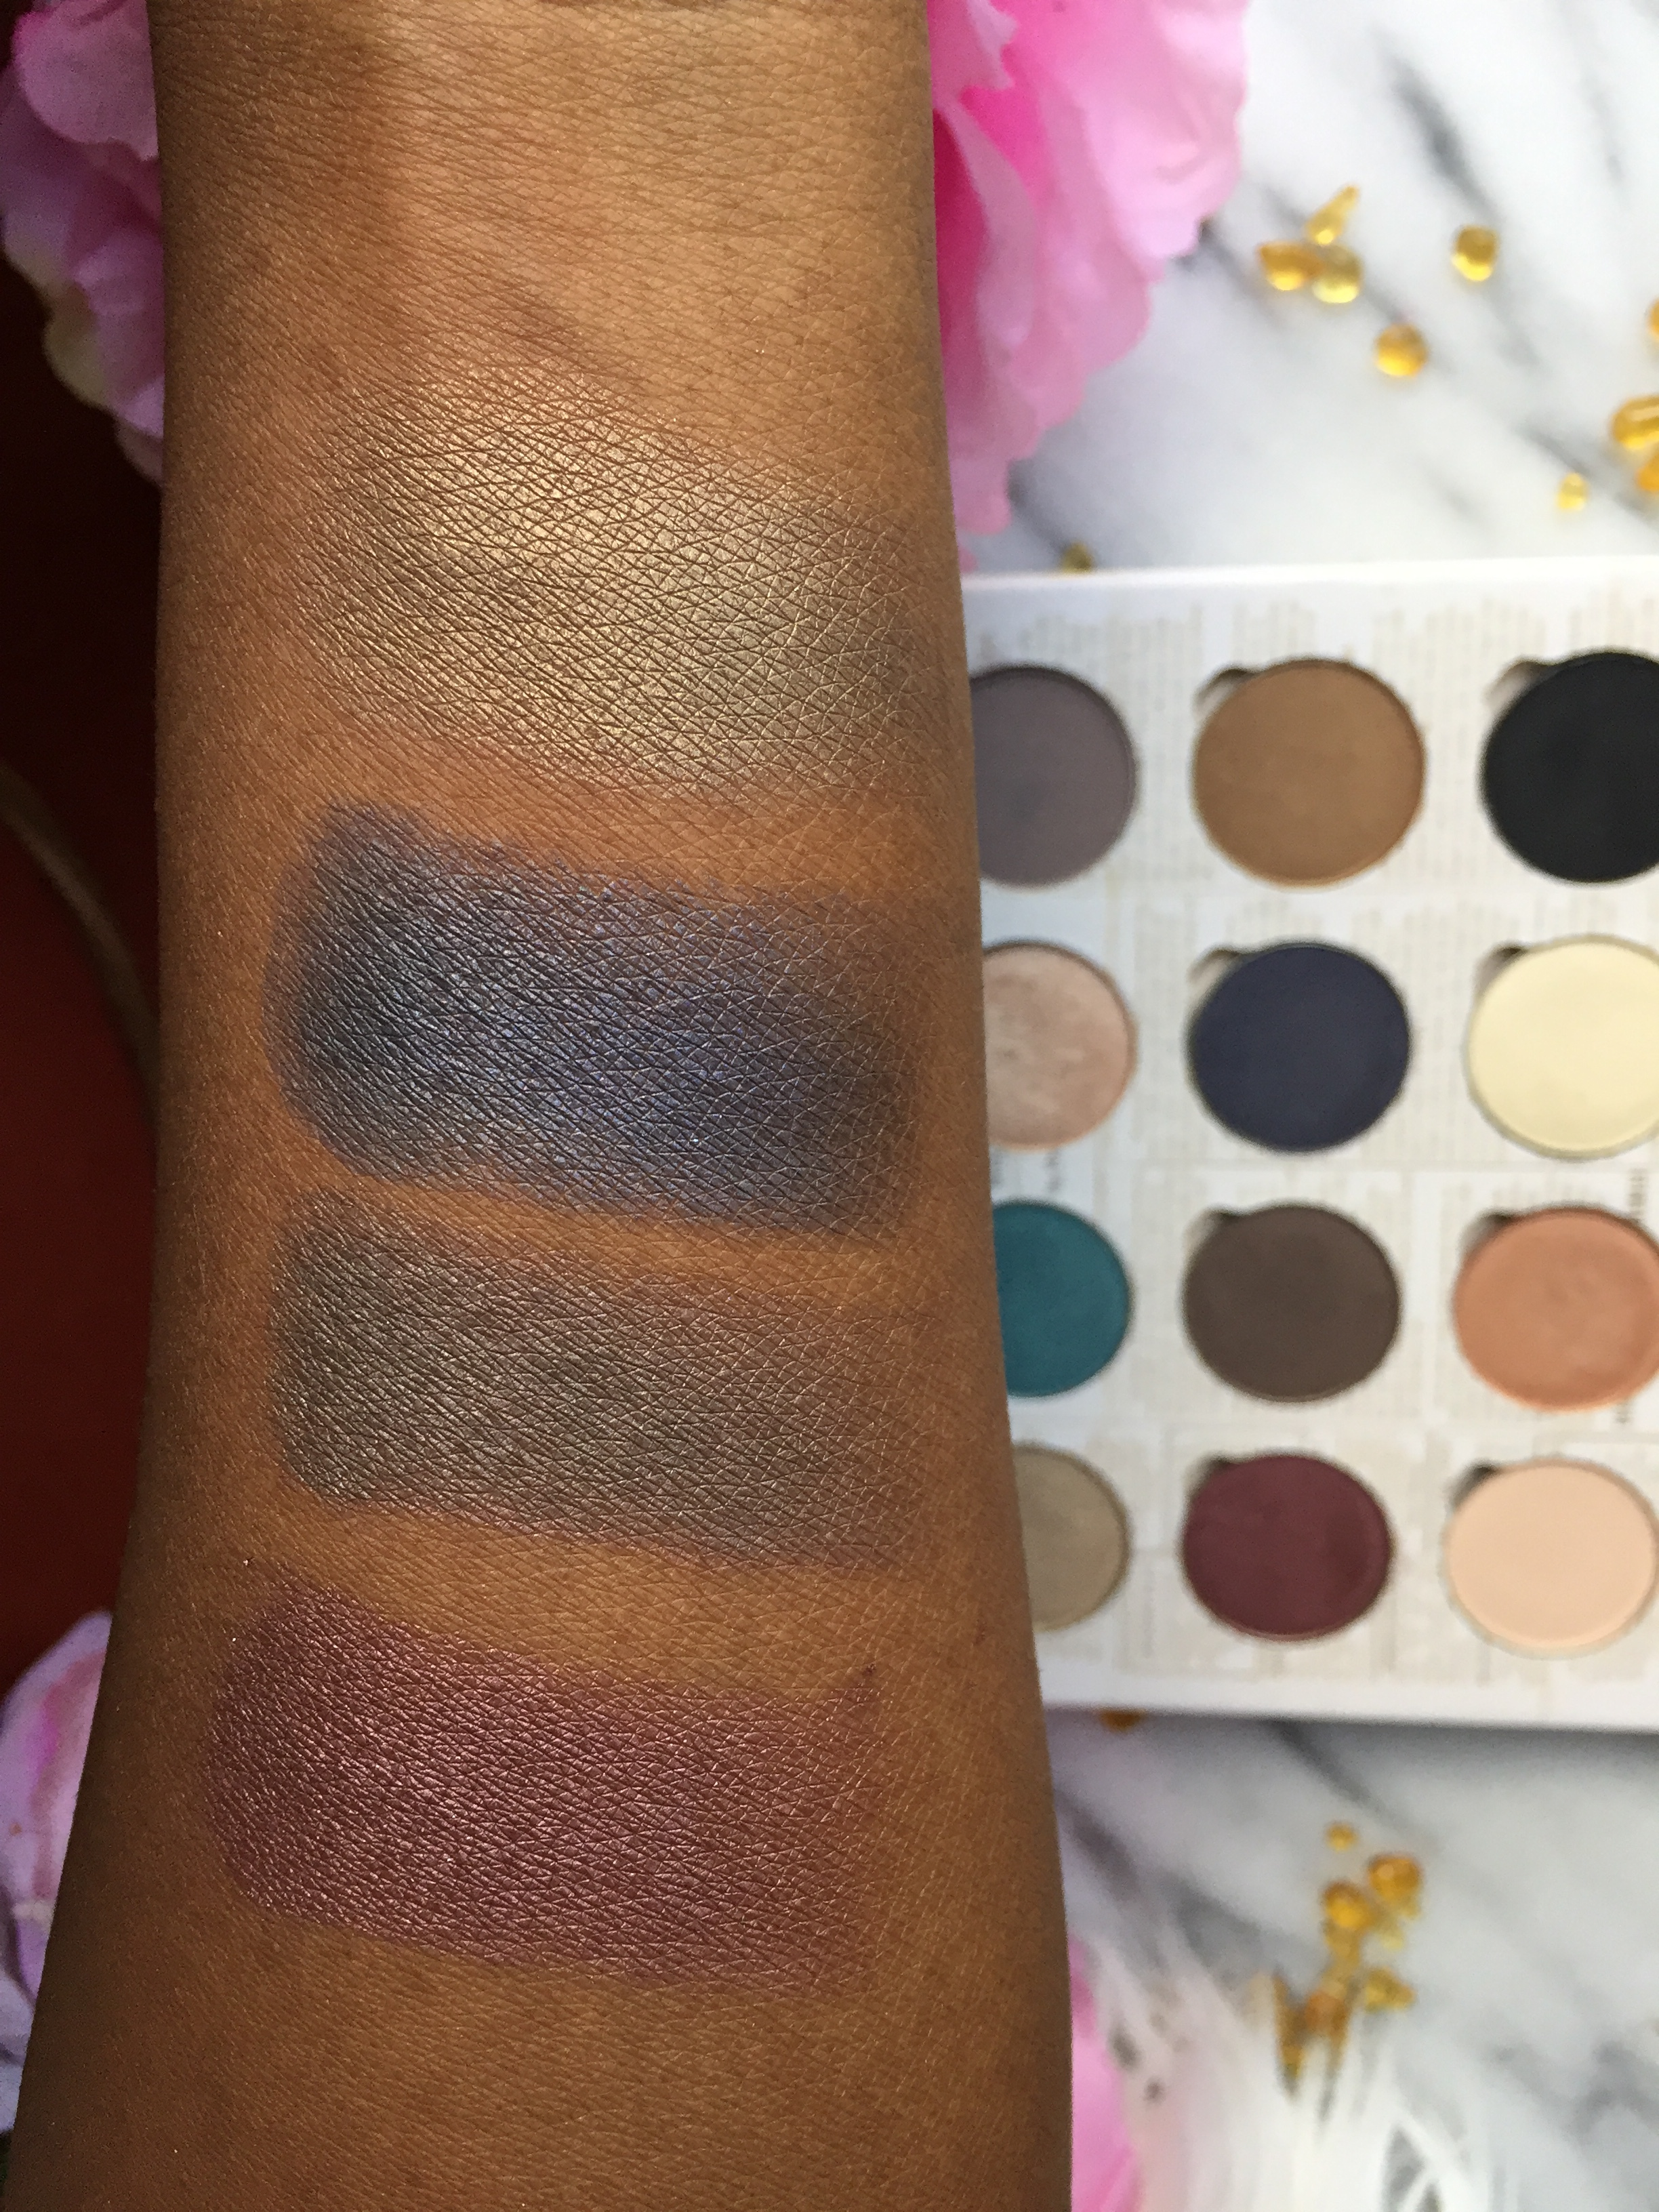 Brush Swatches L to R: #28, #37, #5 and #10